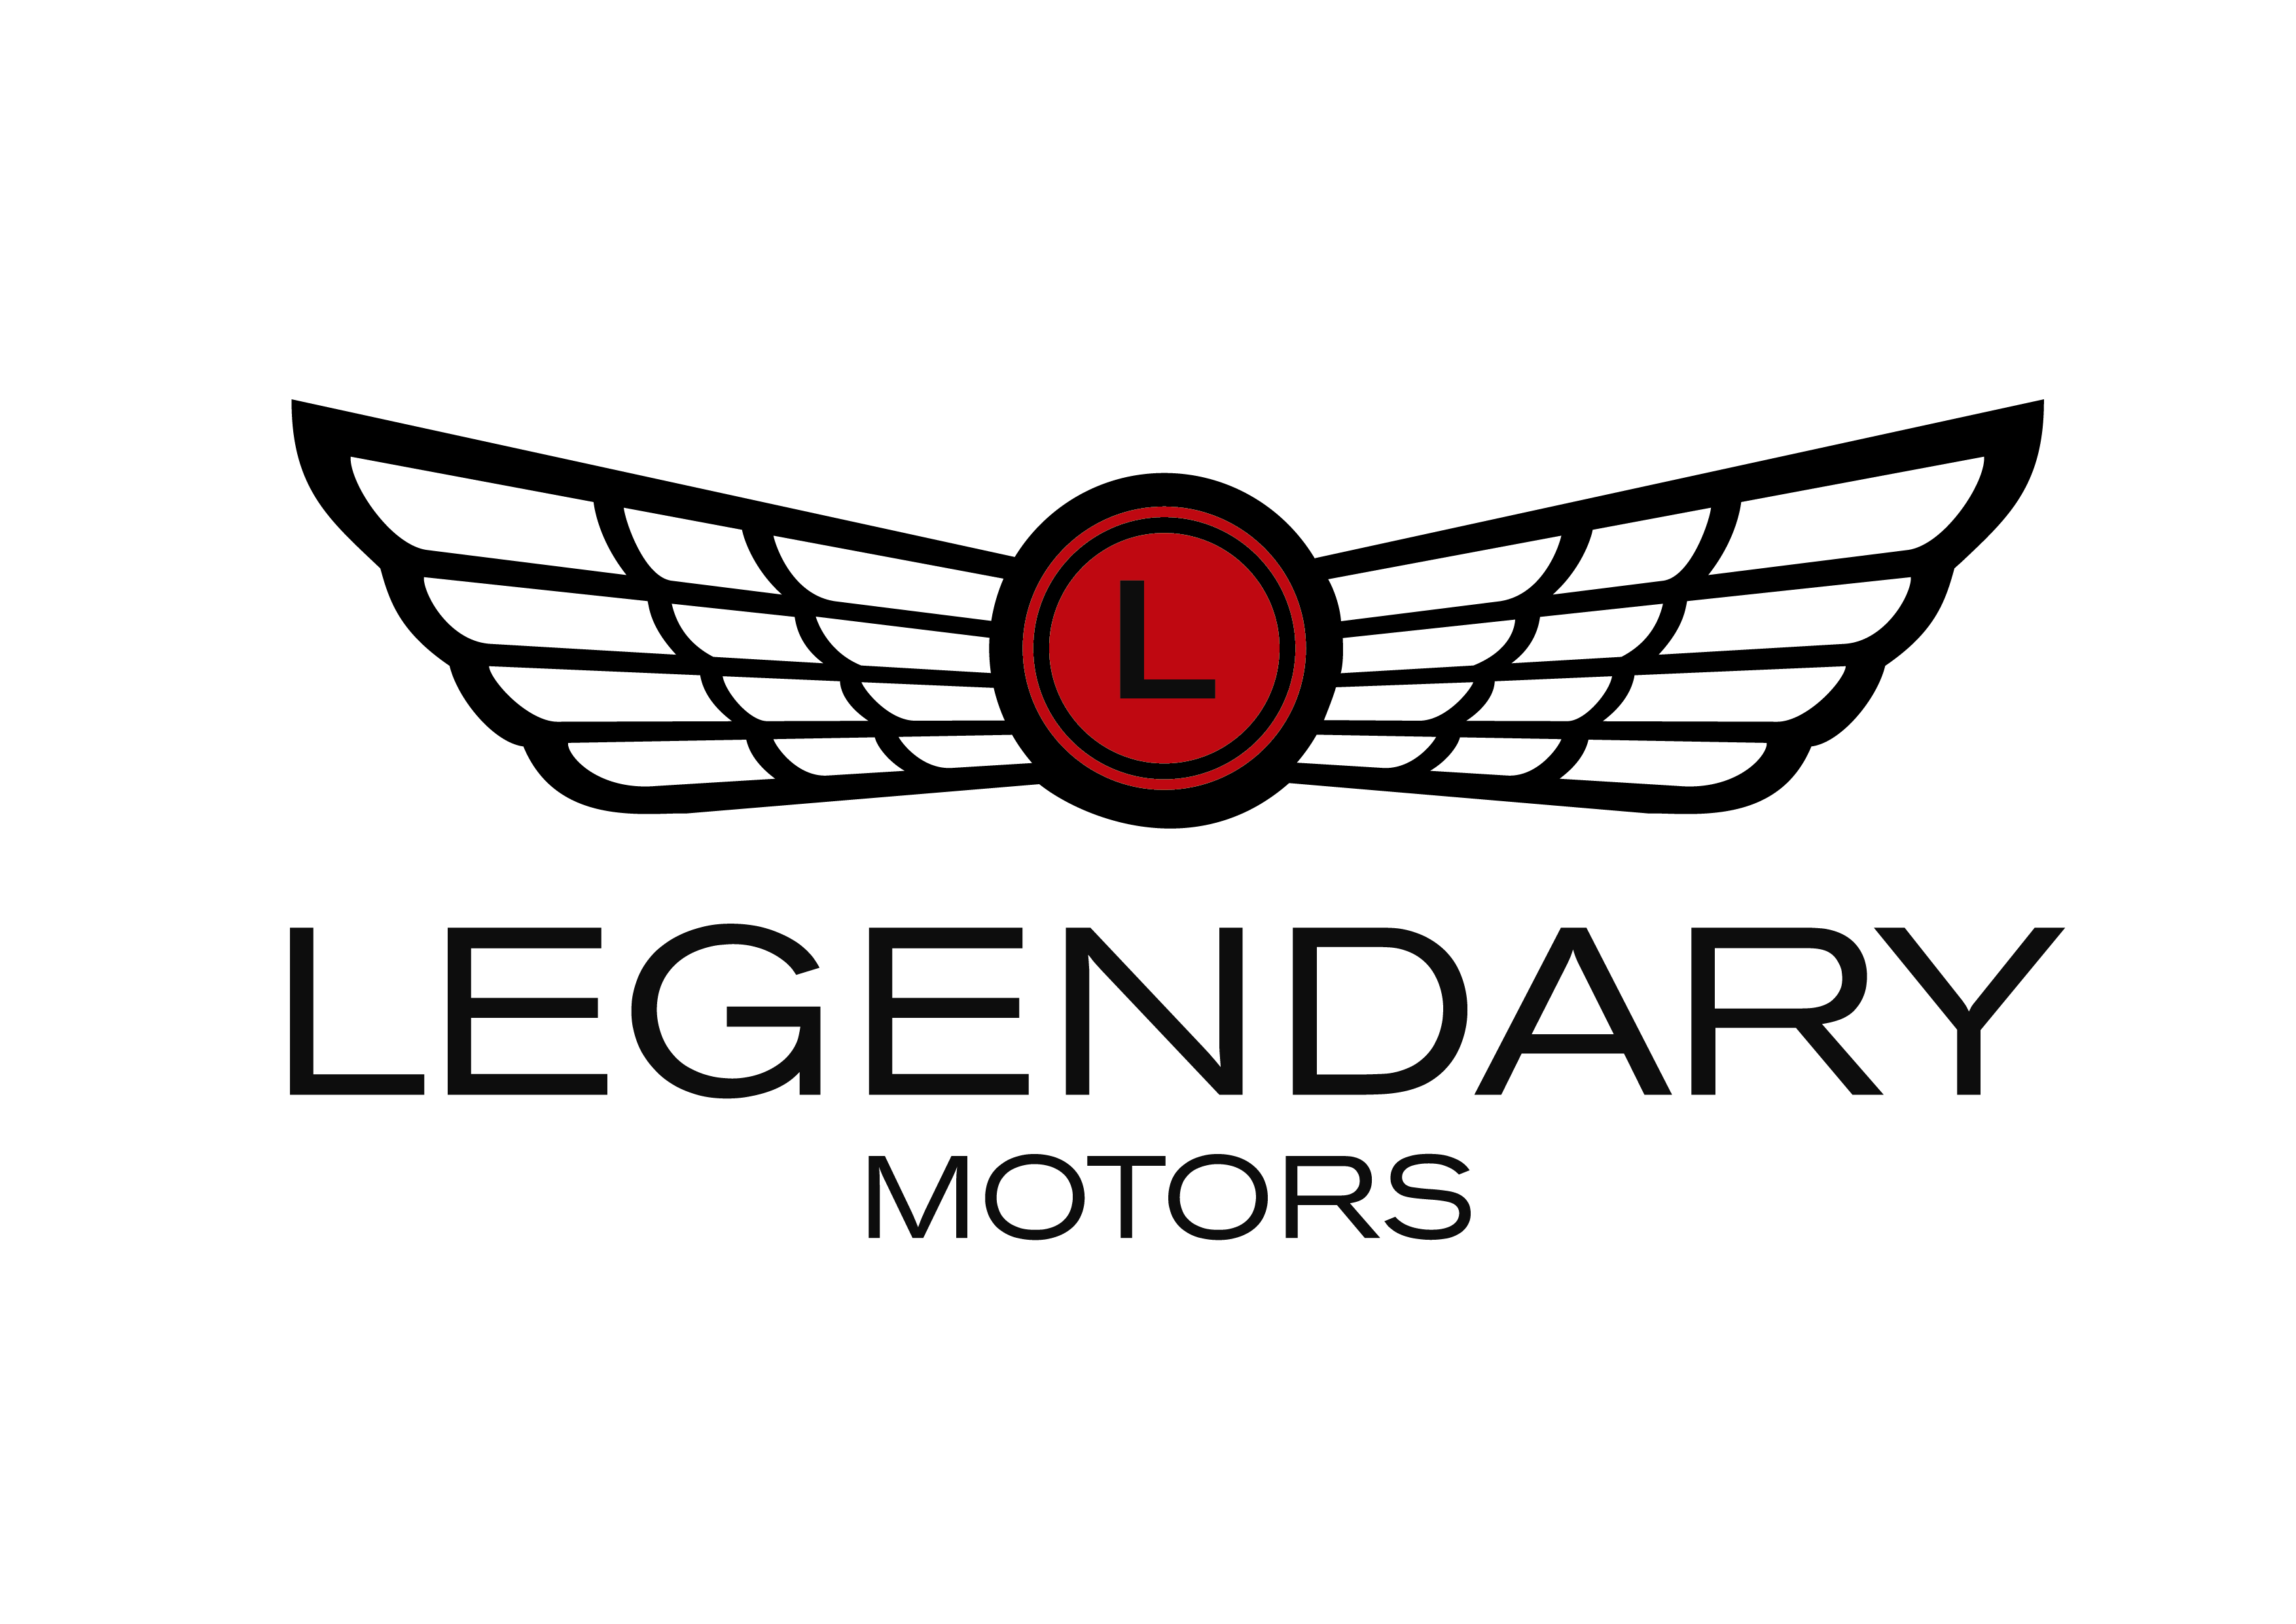 Legendary Motors